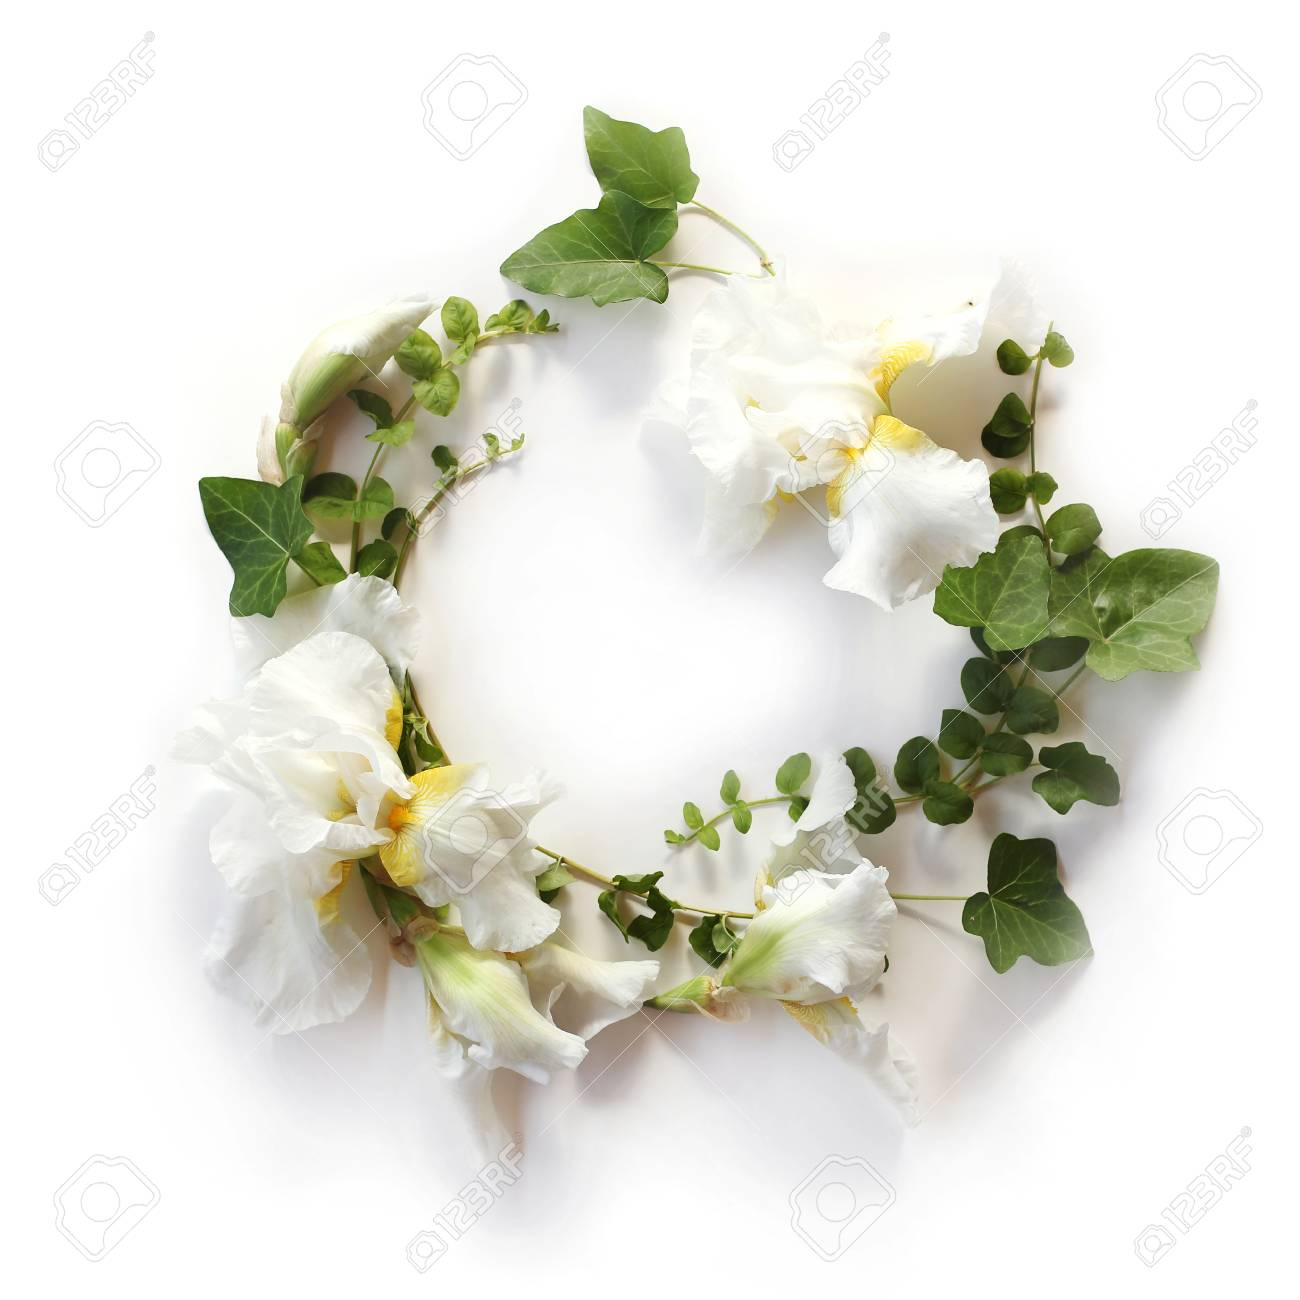 Fresh Holiday Floral Frame Made Of Iris White Flowers Buds And